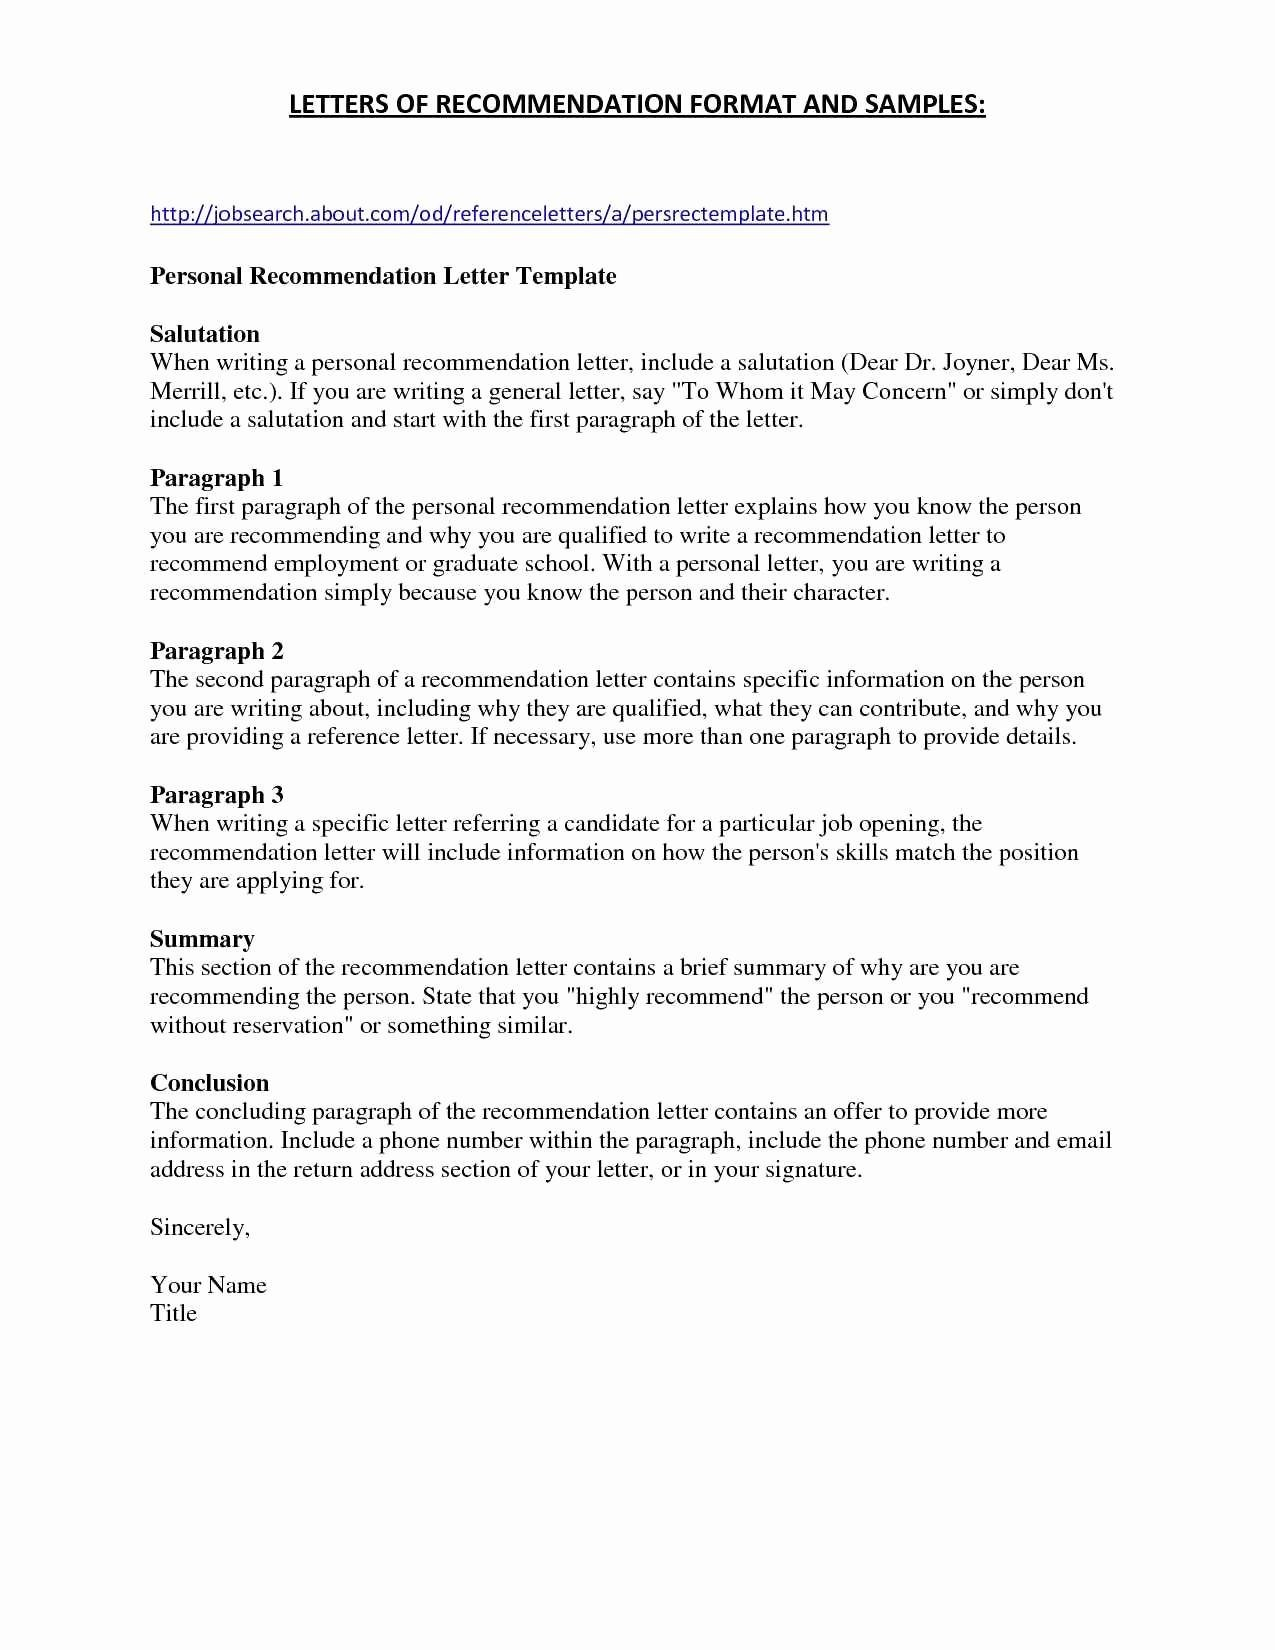 Generic Cover Letter Template - Cover Letter Example for Phd Application Inspirationa Fresh top Ten